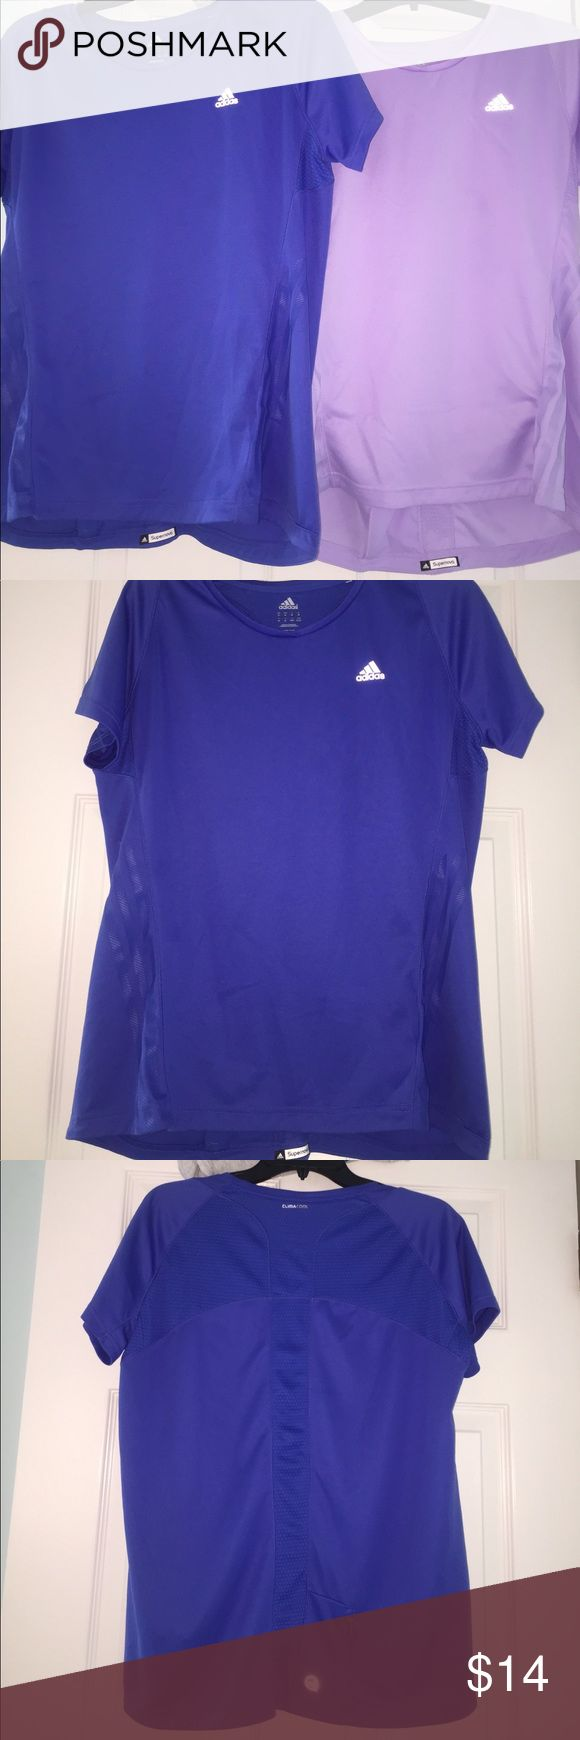 2 adidas workout shirts Fairly new bundle of workout shirts with small zipper on the lower back adidas Tops Tees - Short Sleeve